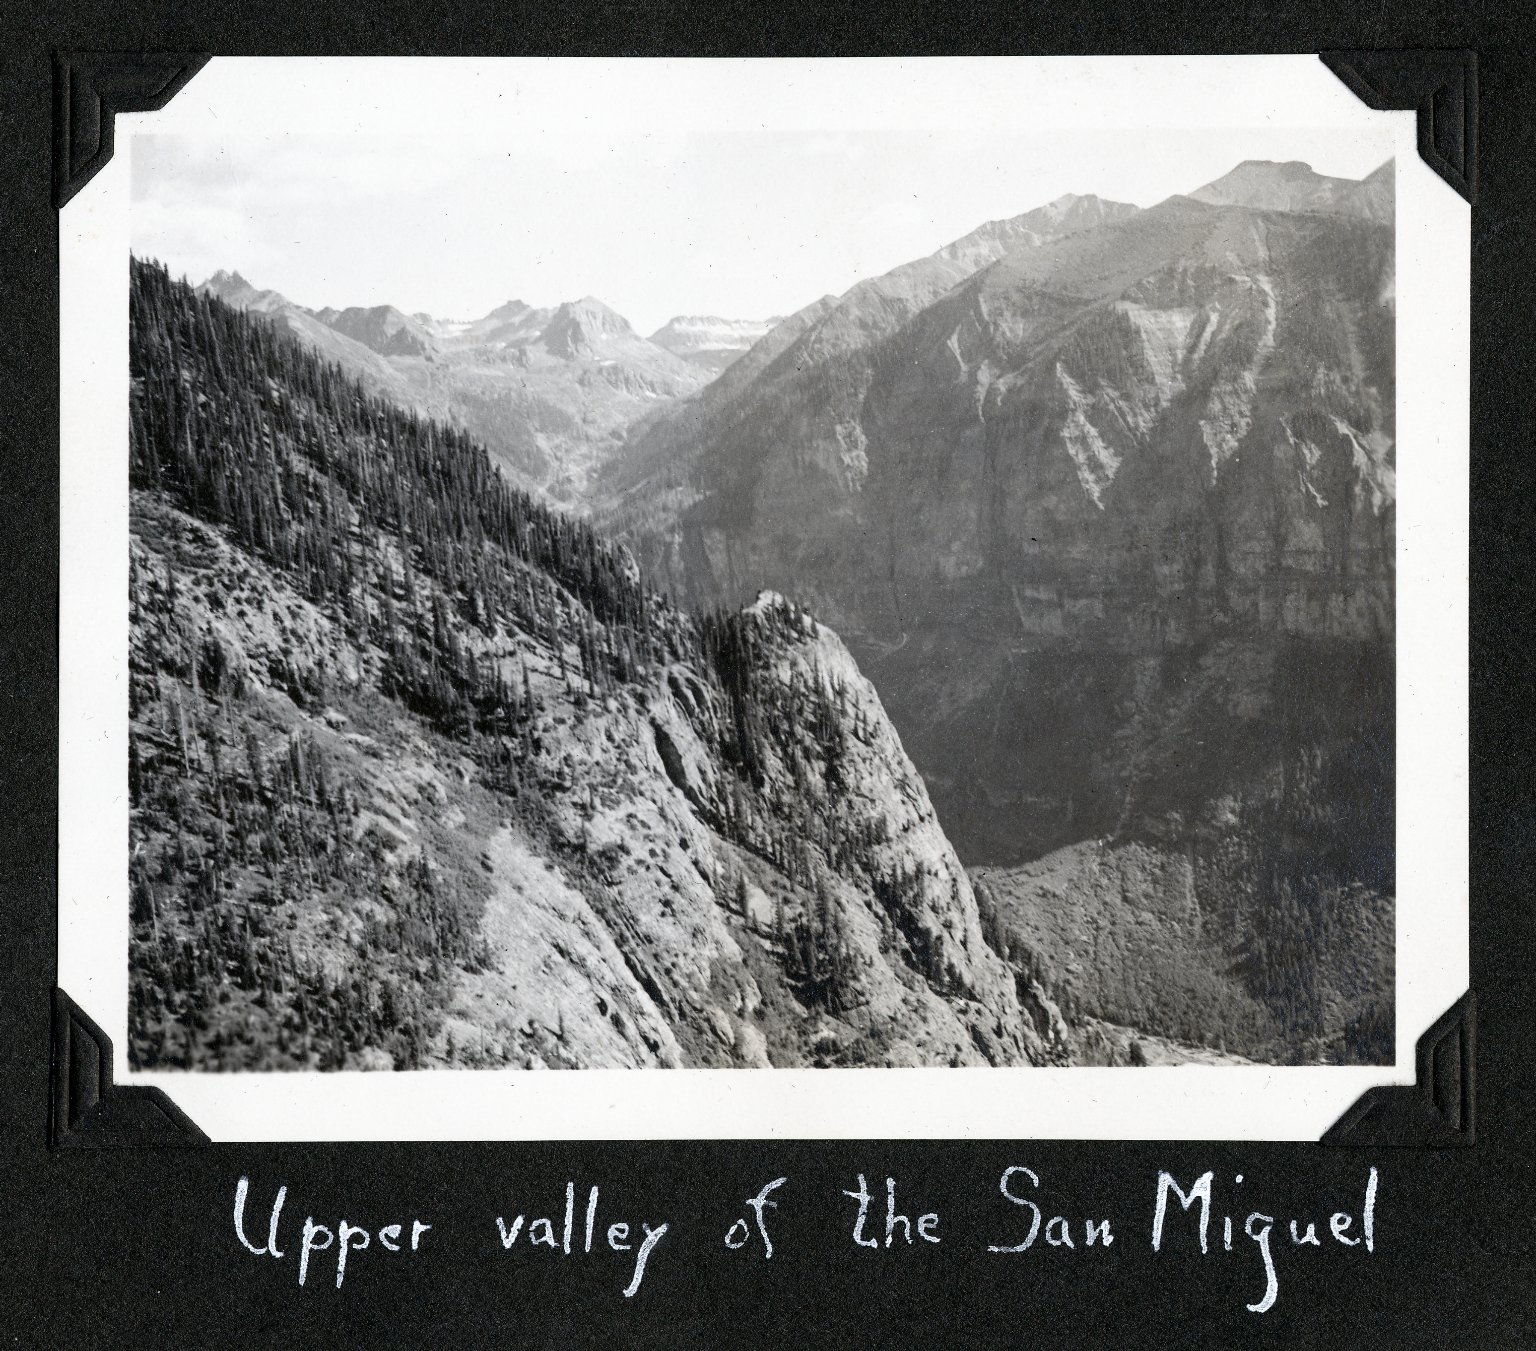 Upper Valley of the San Miguel